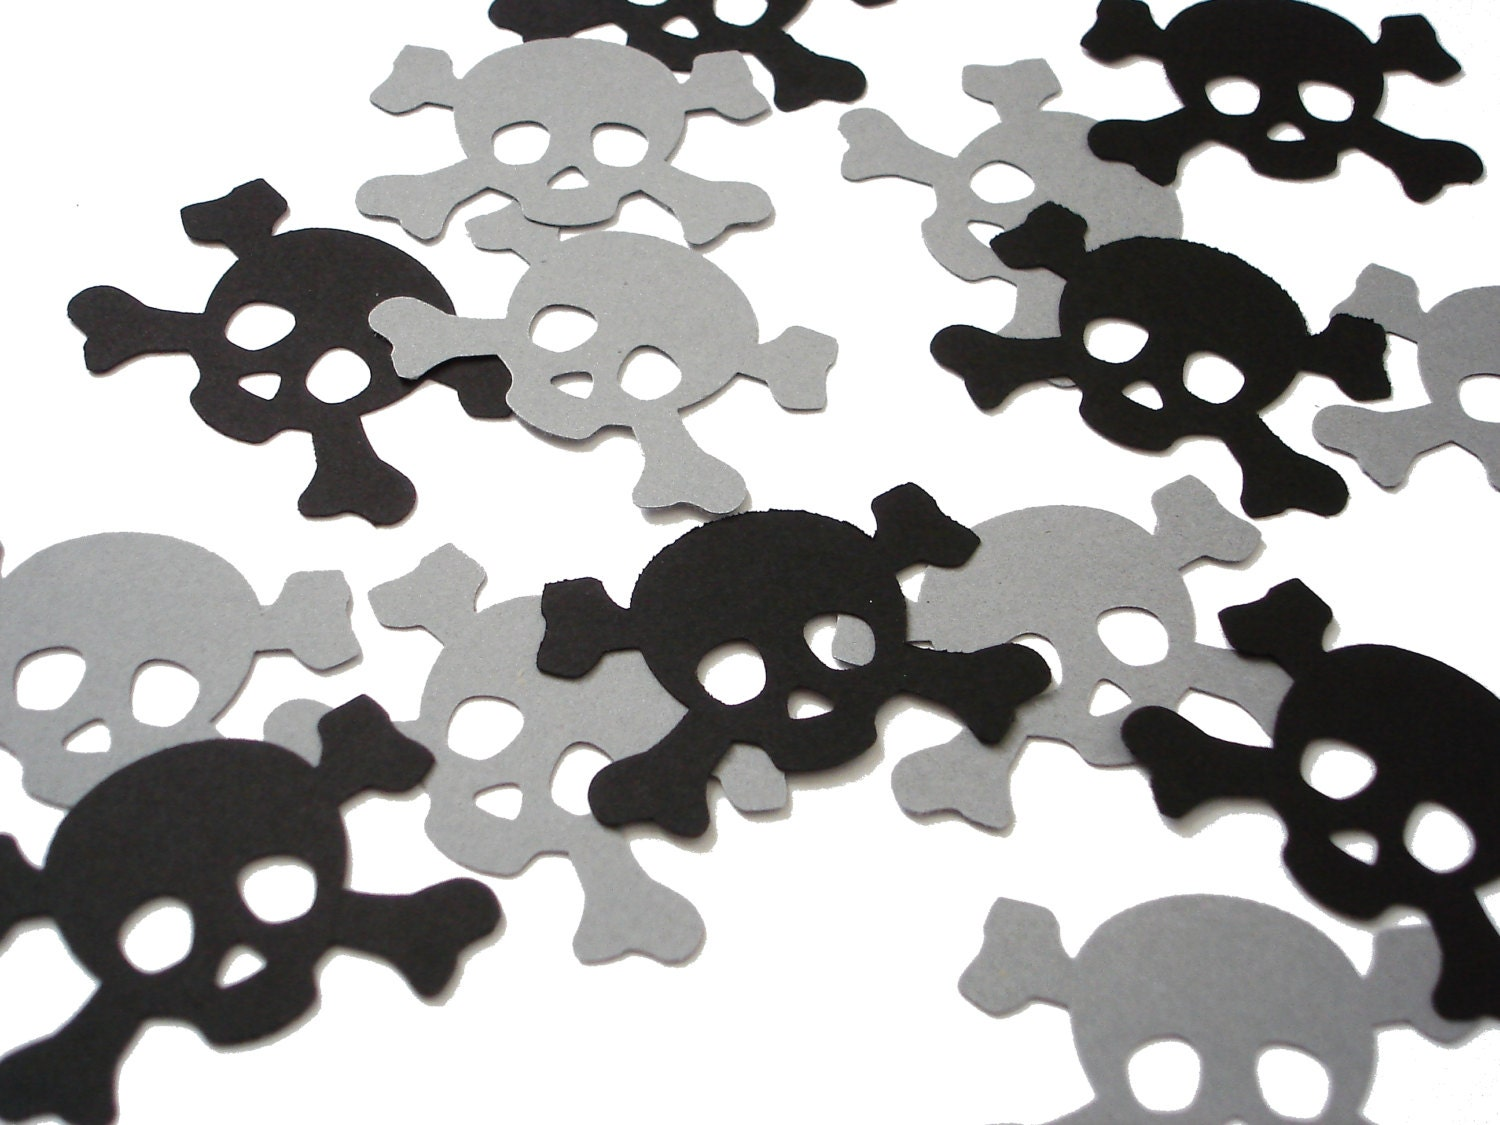 25 Pirate Skull and Crossbones Confetti, Party Decorations, Pirate Party No512 from BelowBlink